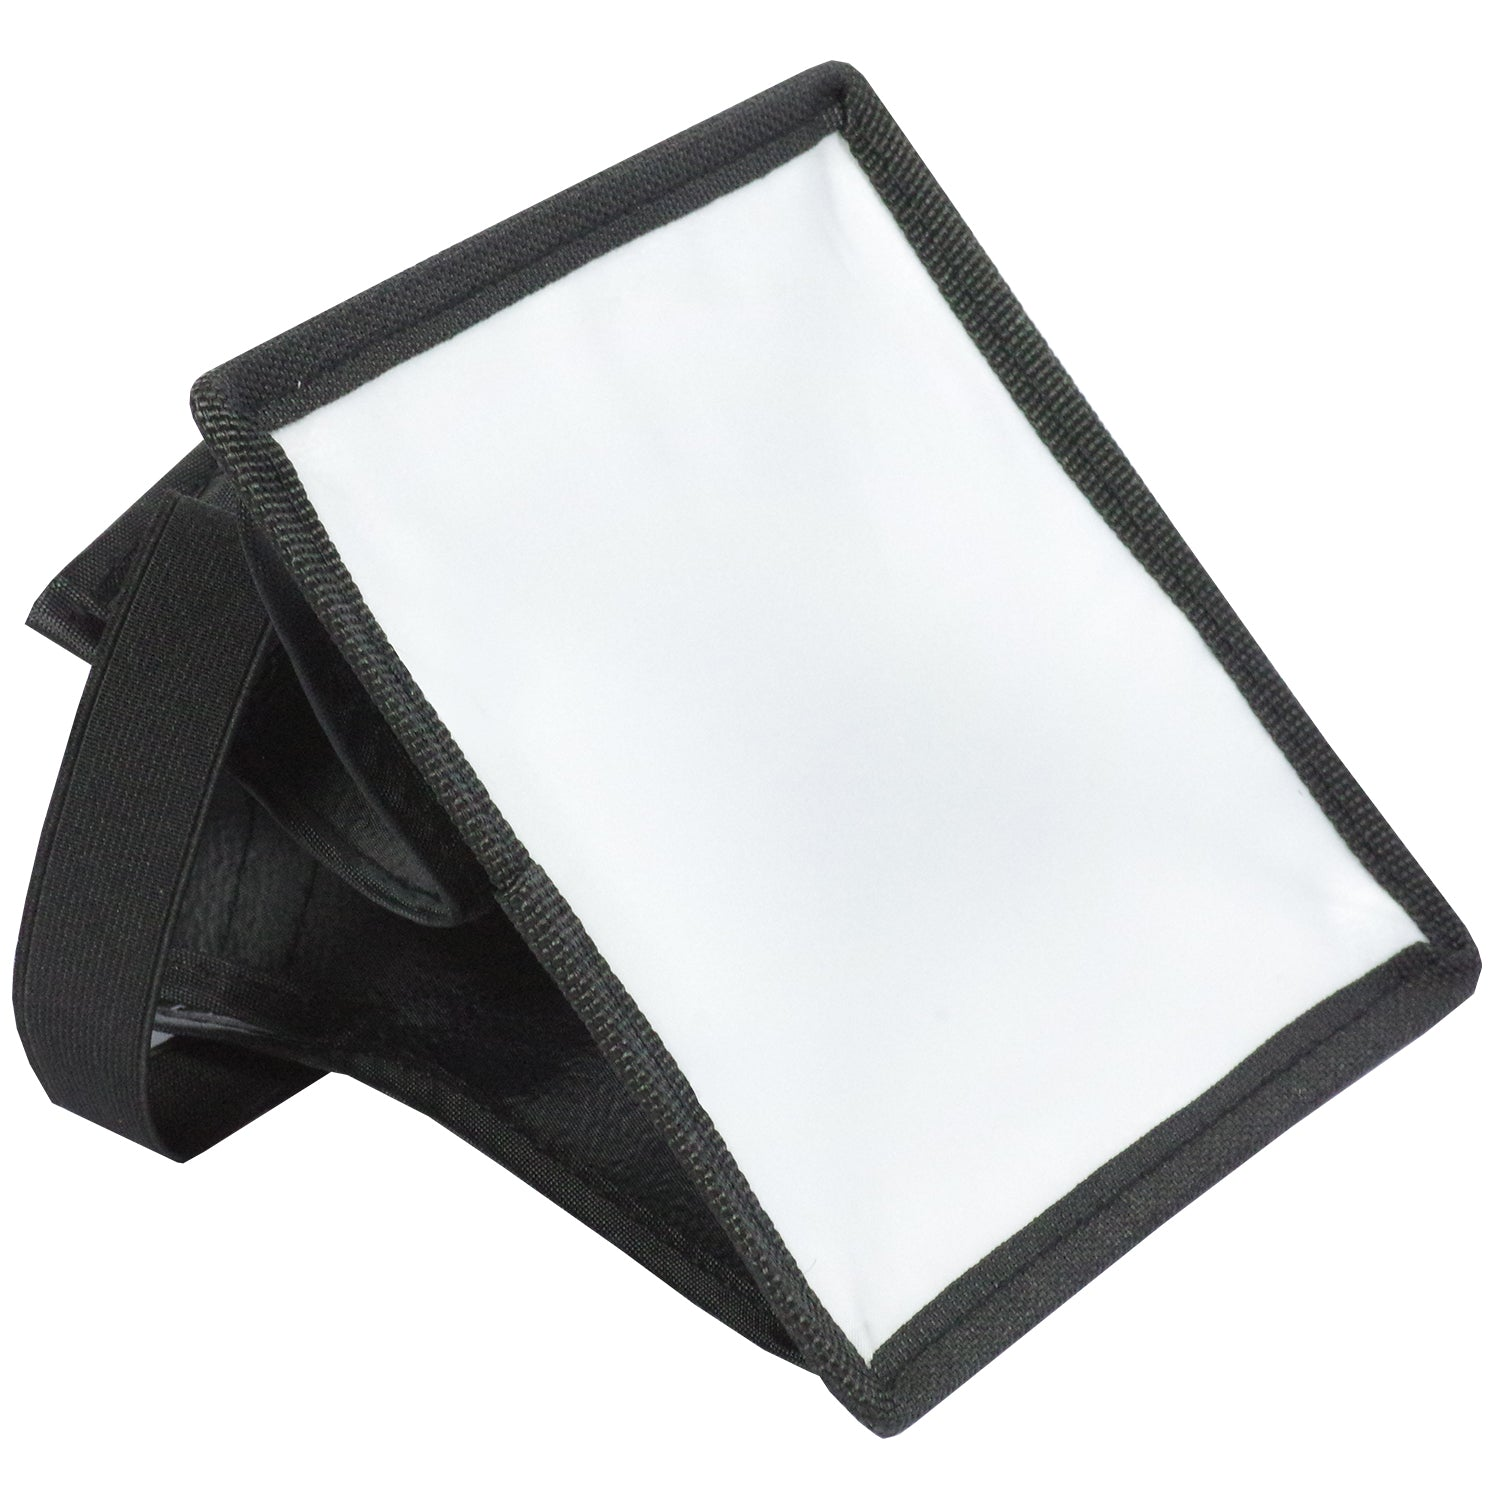 Loadstone Studio 6 x 7 inch Rectangle Foldable Light Diffuser Cover, Mini Softbox for Photo and Video Shooting, LED